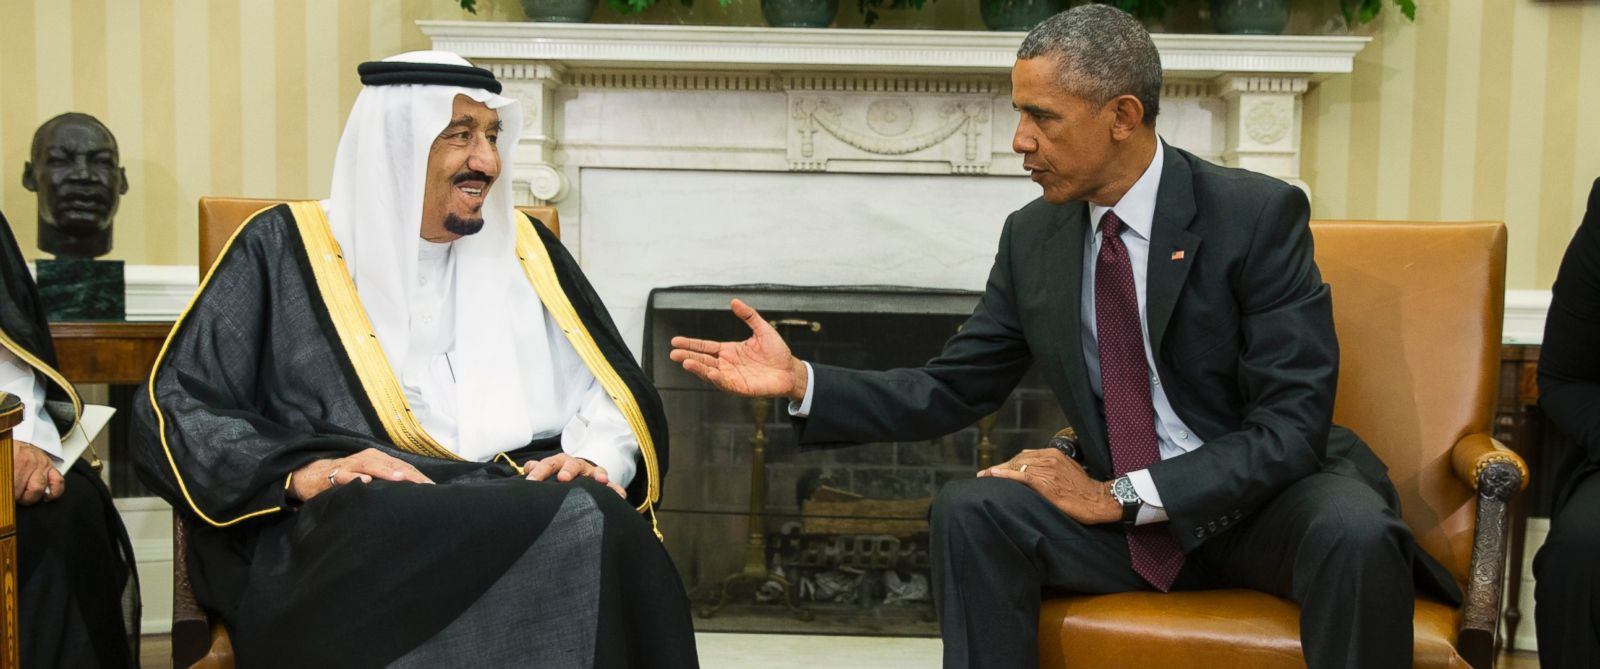 PHOTO: President Barack Obama, right, meets with King Salman of Saudi Arabia in the Oval Office of the White House, on Friday, Sept. 4, 2015, in Washington.